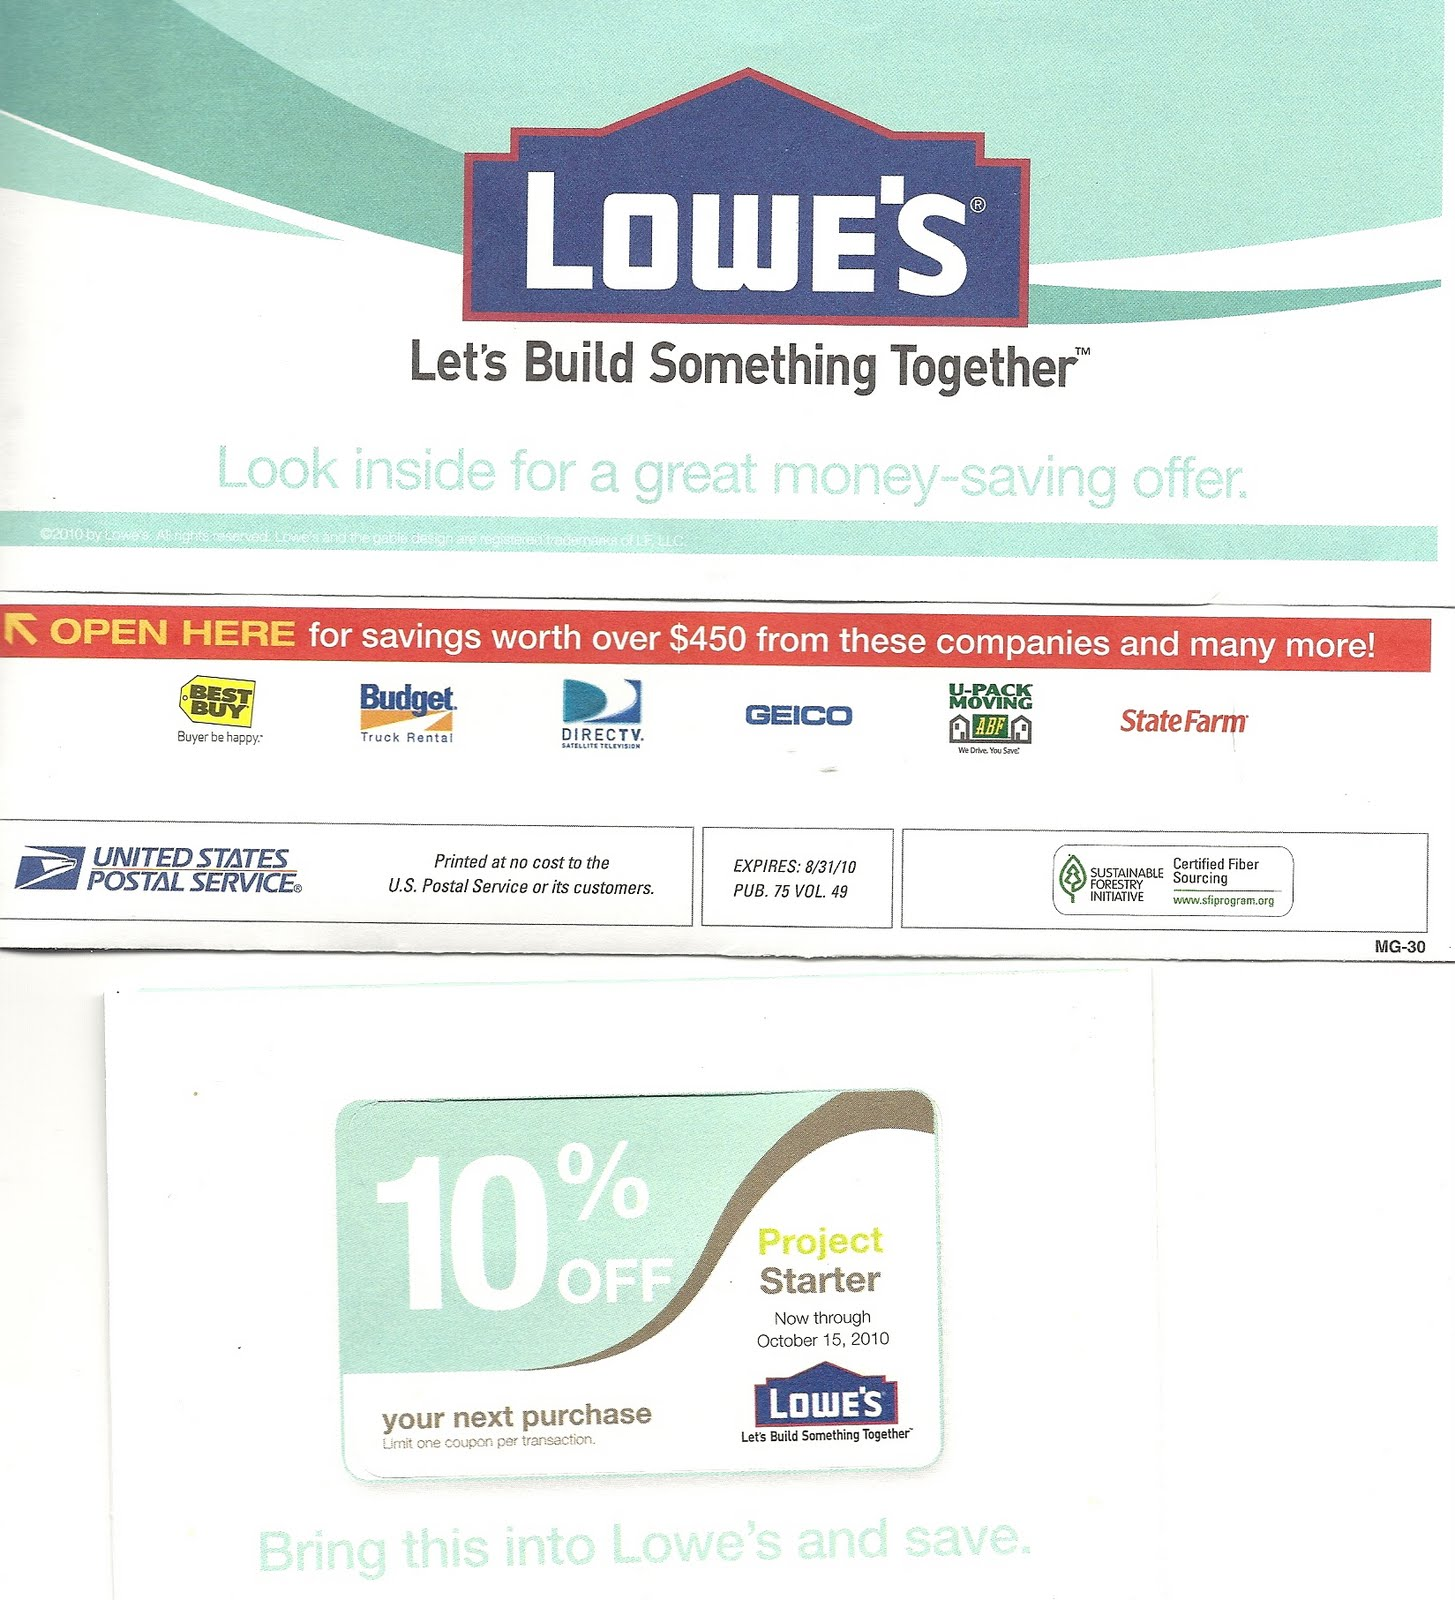 Live love coupons lowes coupon has been reissued in the usps moving